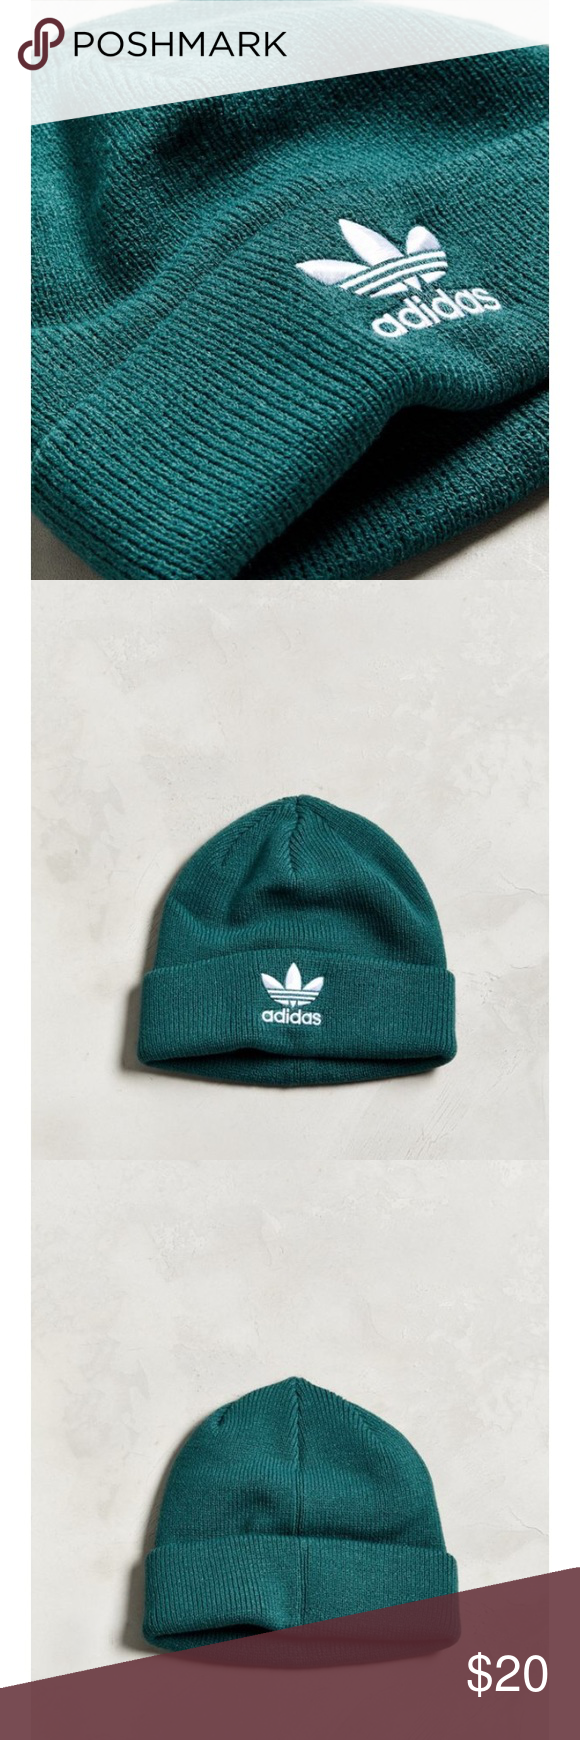 952834ca92d New-adidas original trefoil green beanie Brand new with tag Get prepared  for coming winter! adidas Accessories Hats